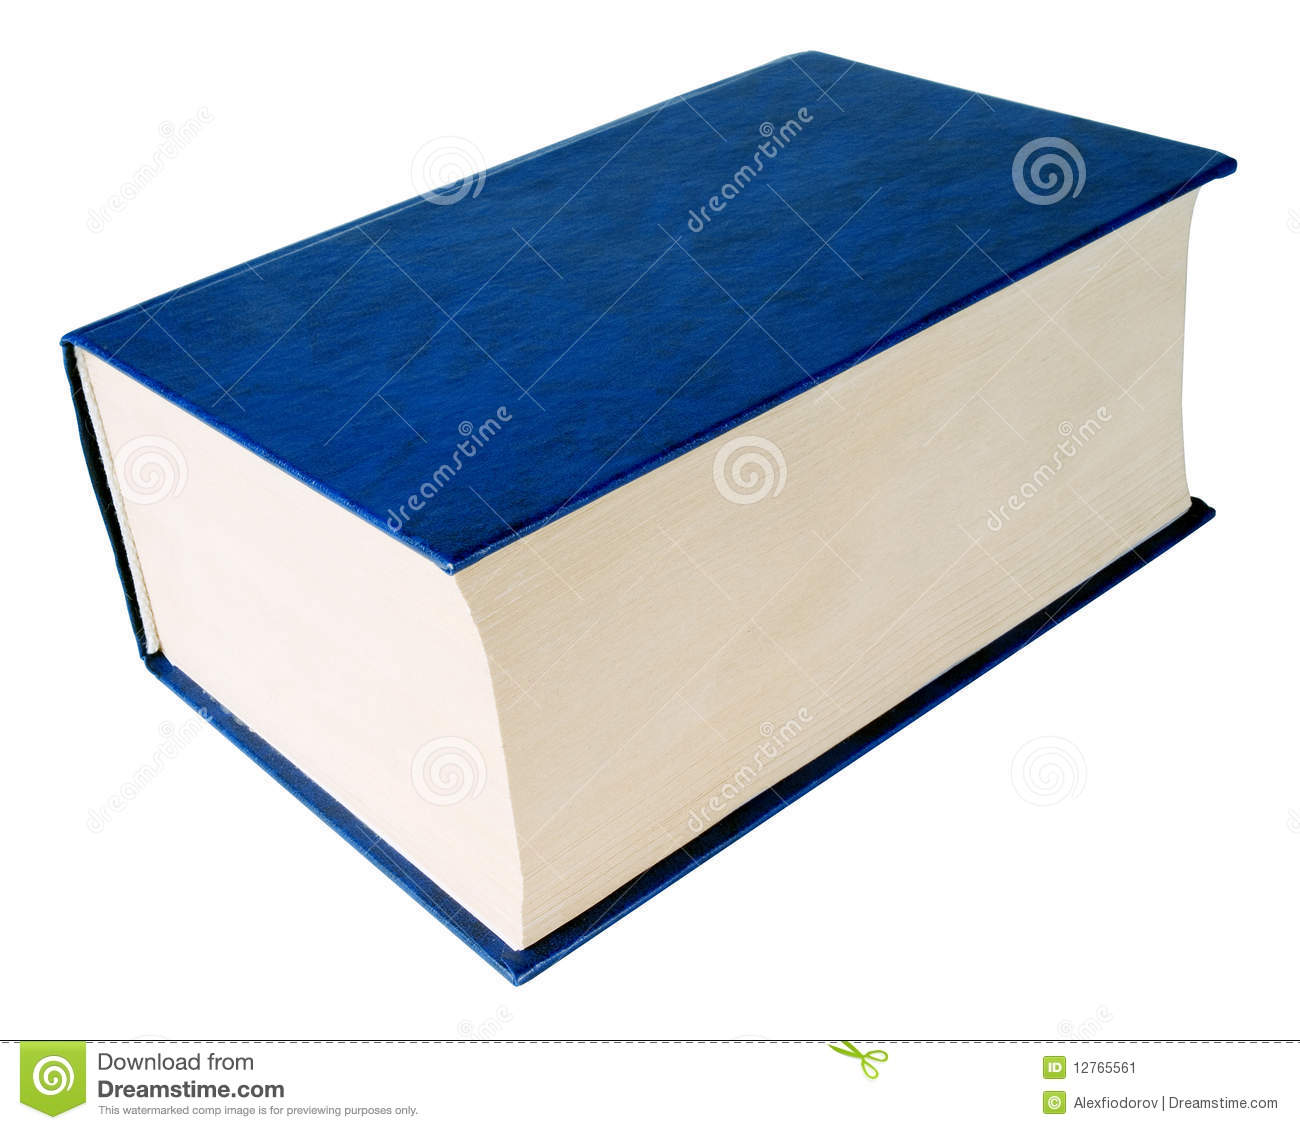 Thick blue book on white background (isolated with path).